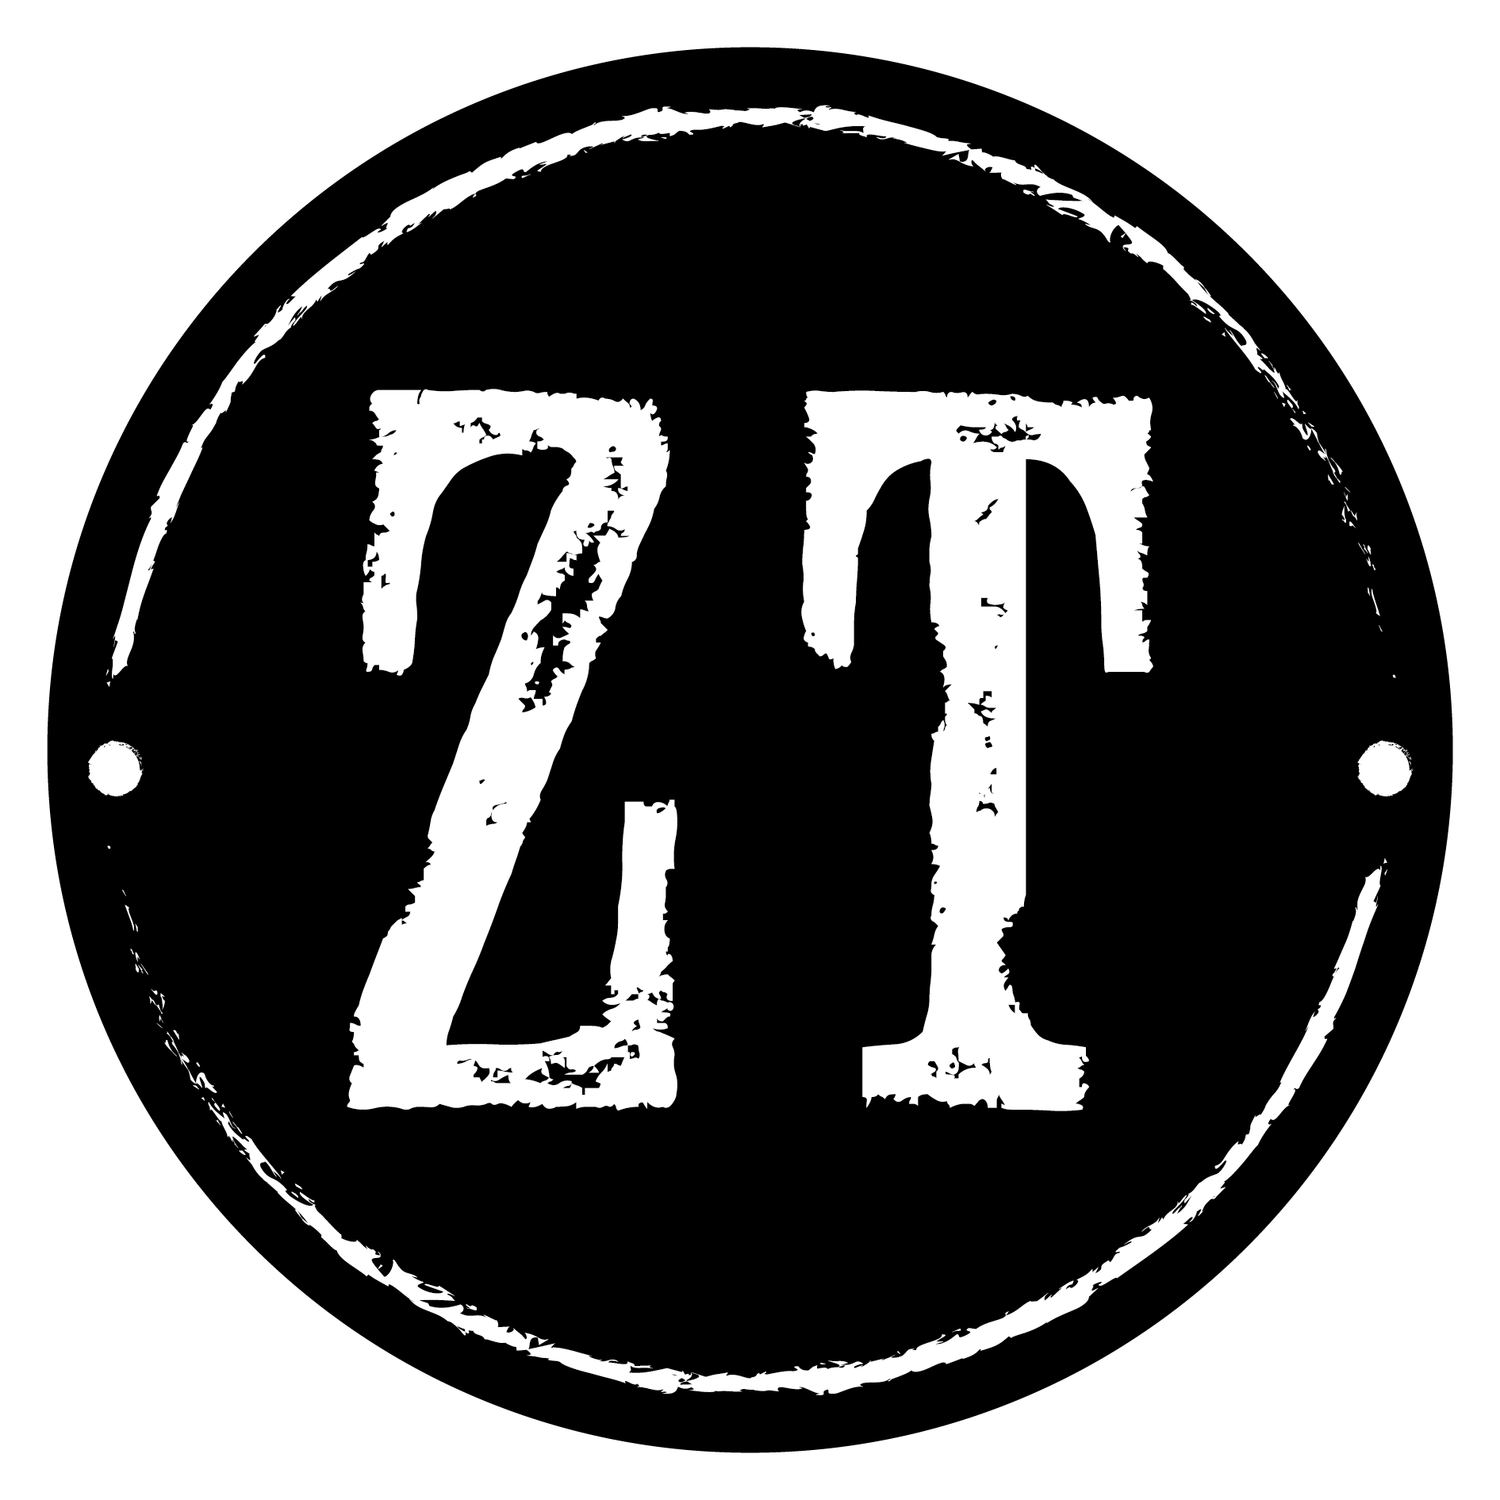 The Zeitgeist Tapes - a podcast looking at the point where politics and pop culture collide, presented by Emma Burnell and Steve Fielding.